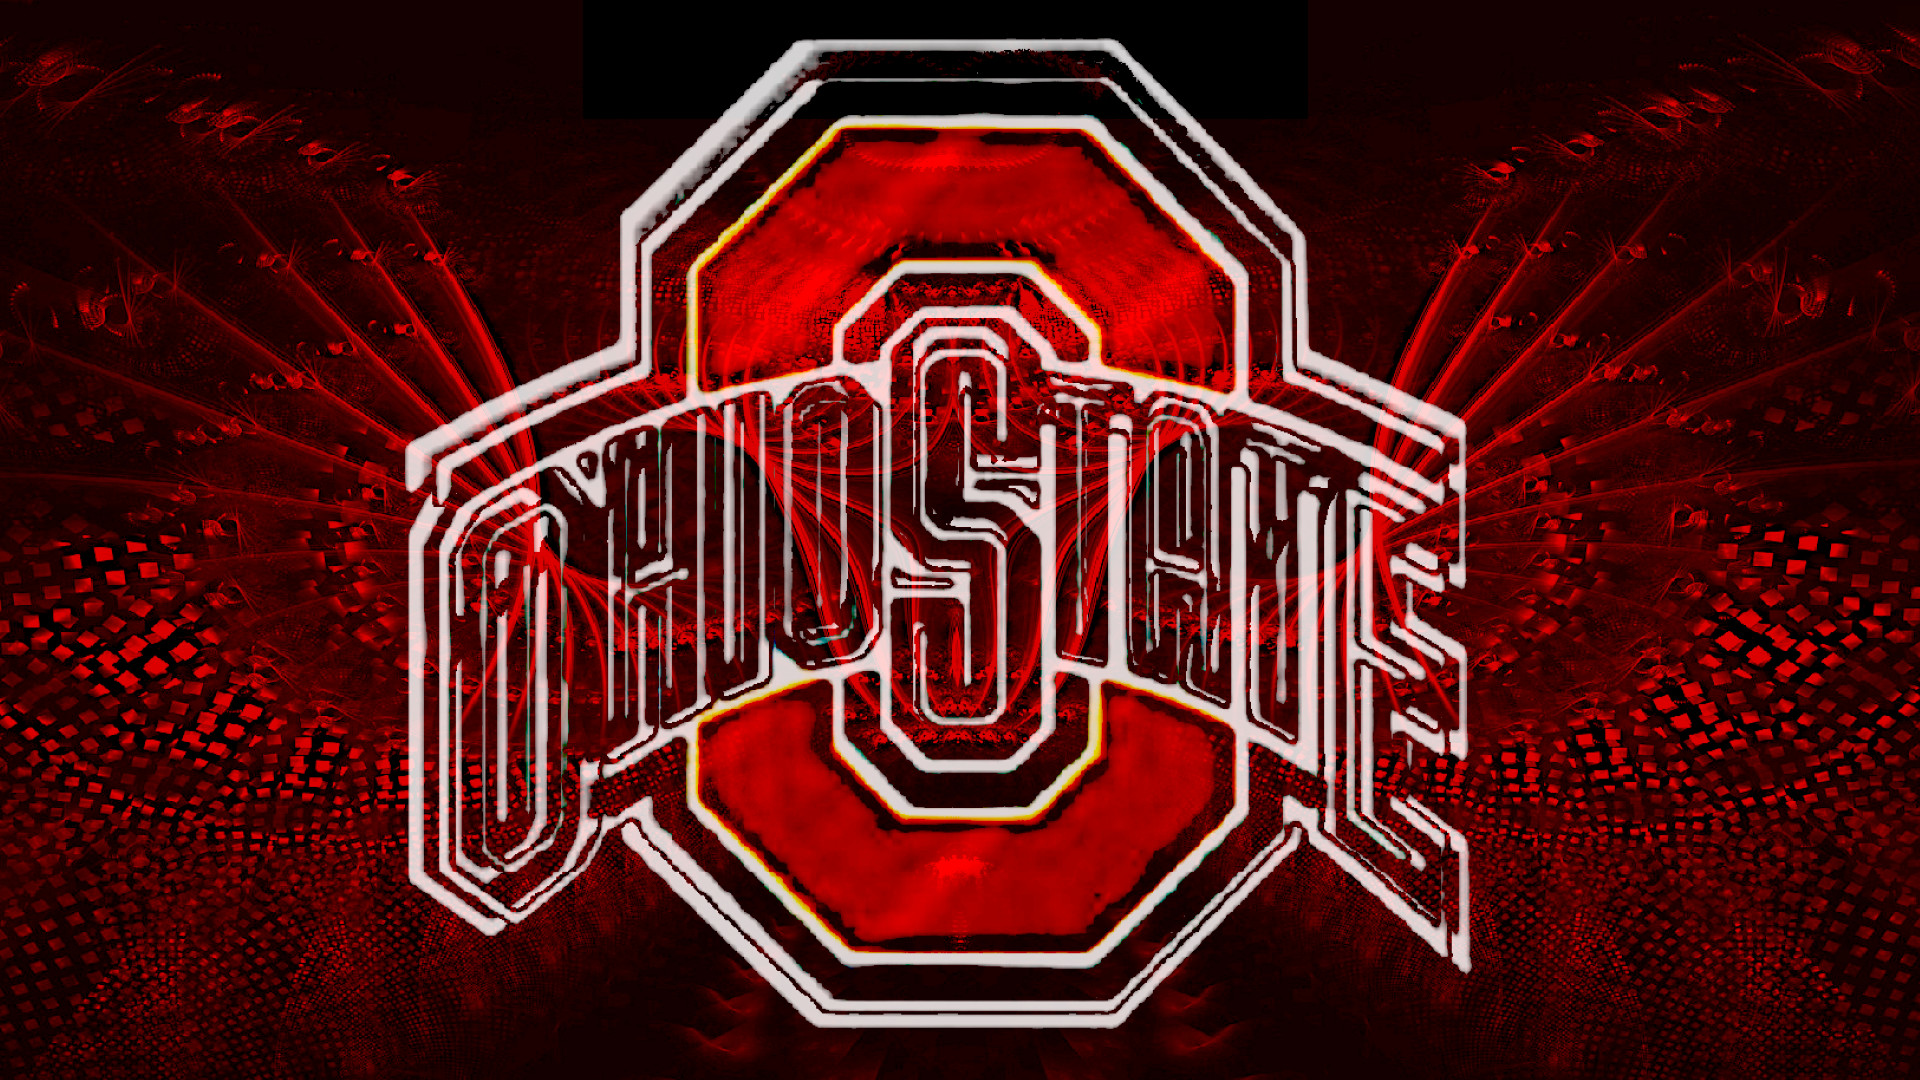 Celebrate The Game With Ohio State Michigan Wallpapers and   HD Wallpapers    Pinterest   Wallpaper